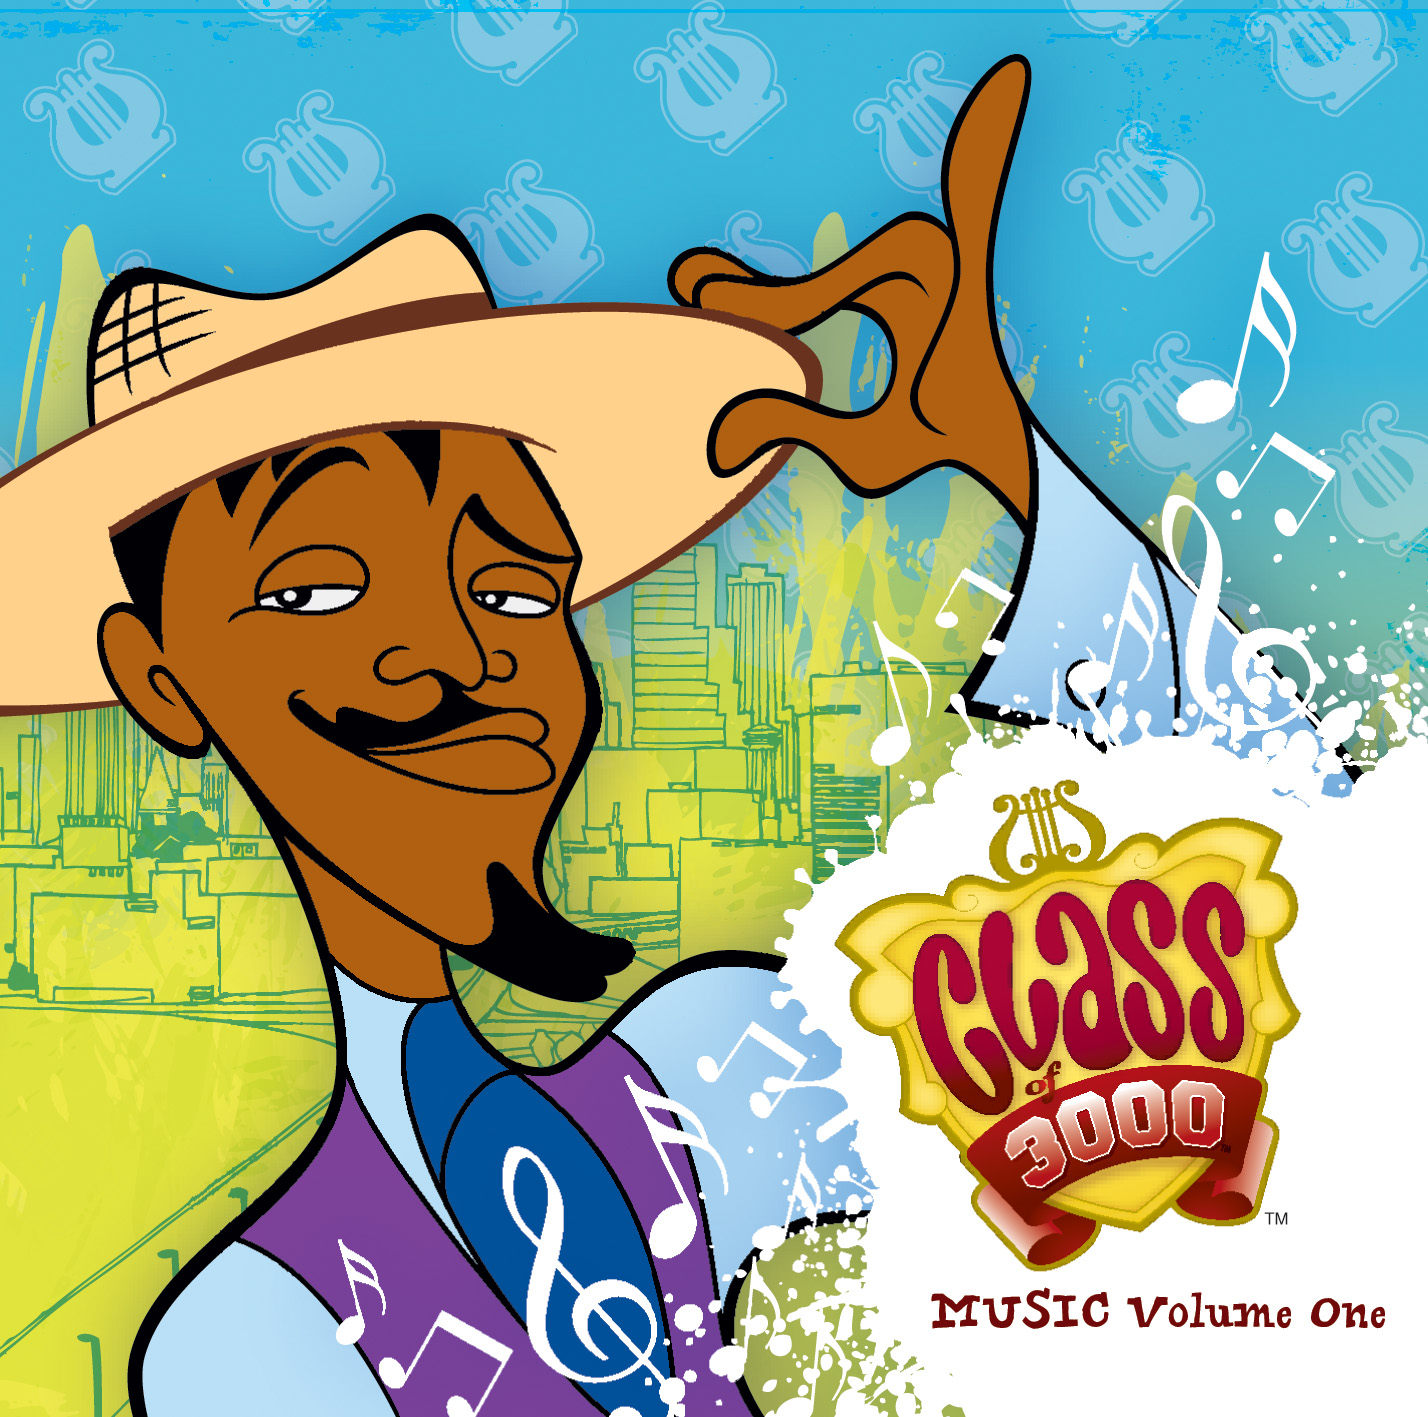 Where We Were On July 3 2007 The Day Soundtrack To Andr Benjamins Animated Series Class Of 3000 Was Released It Had Been A Year Since Premiere